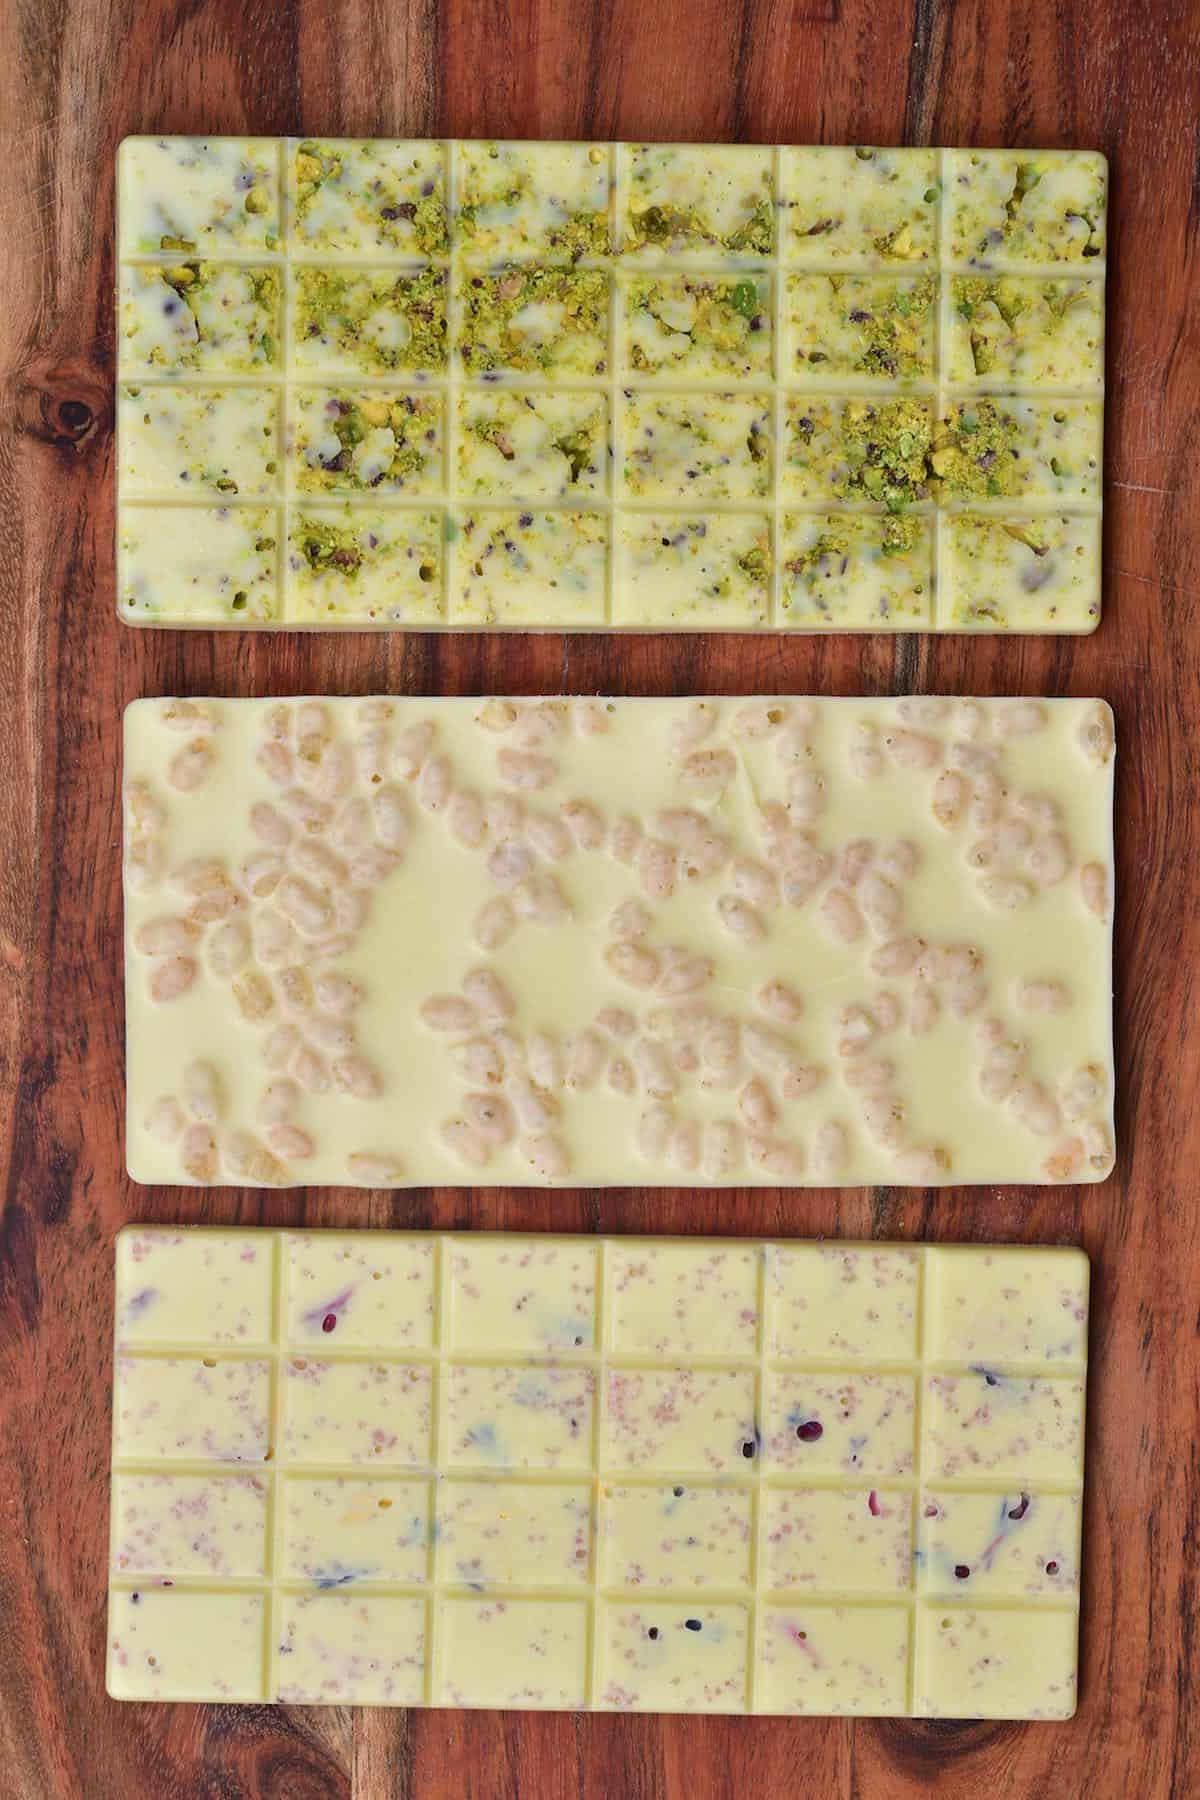 Three bars of white chocolate with different toppings - pistachios, puffed rice, edible dried flowers with pink salt